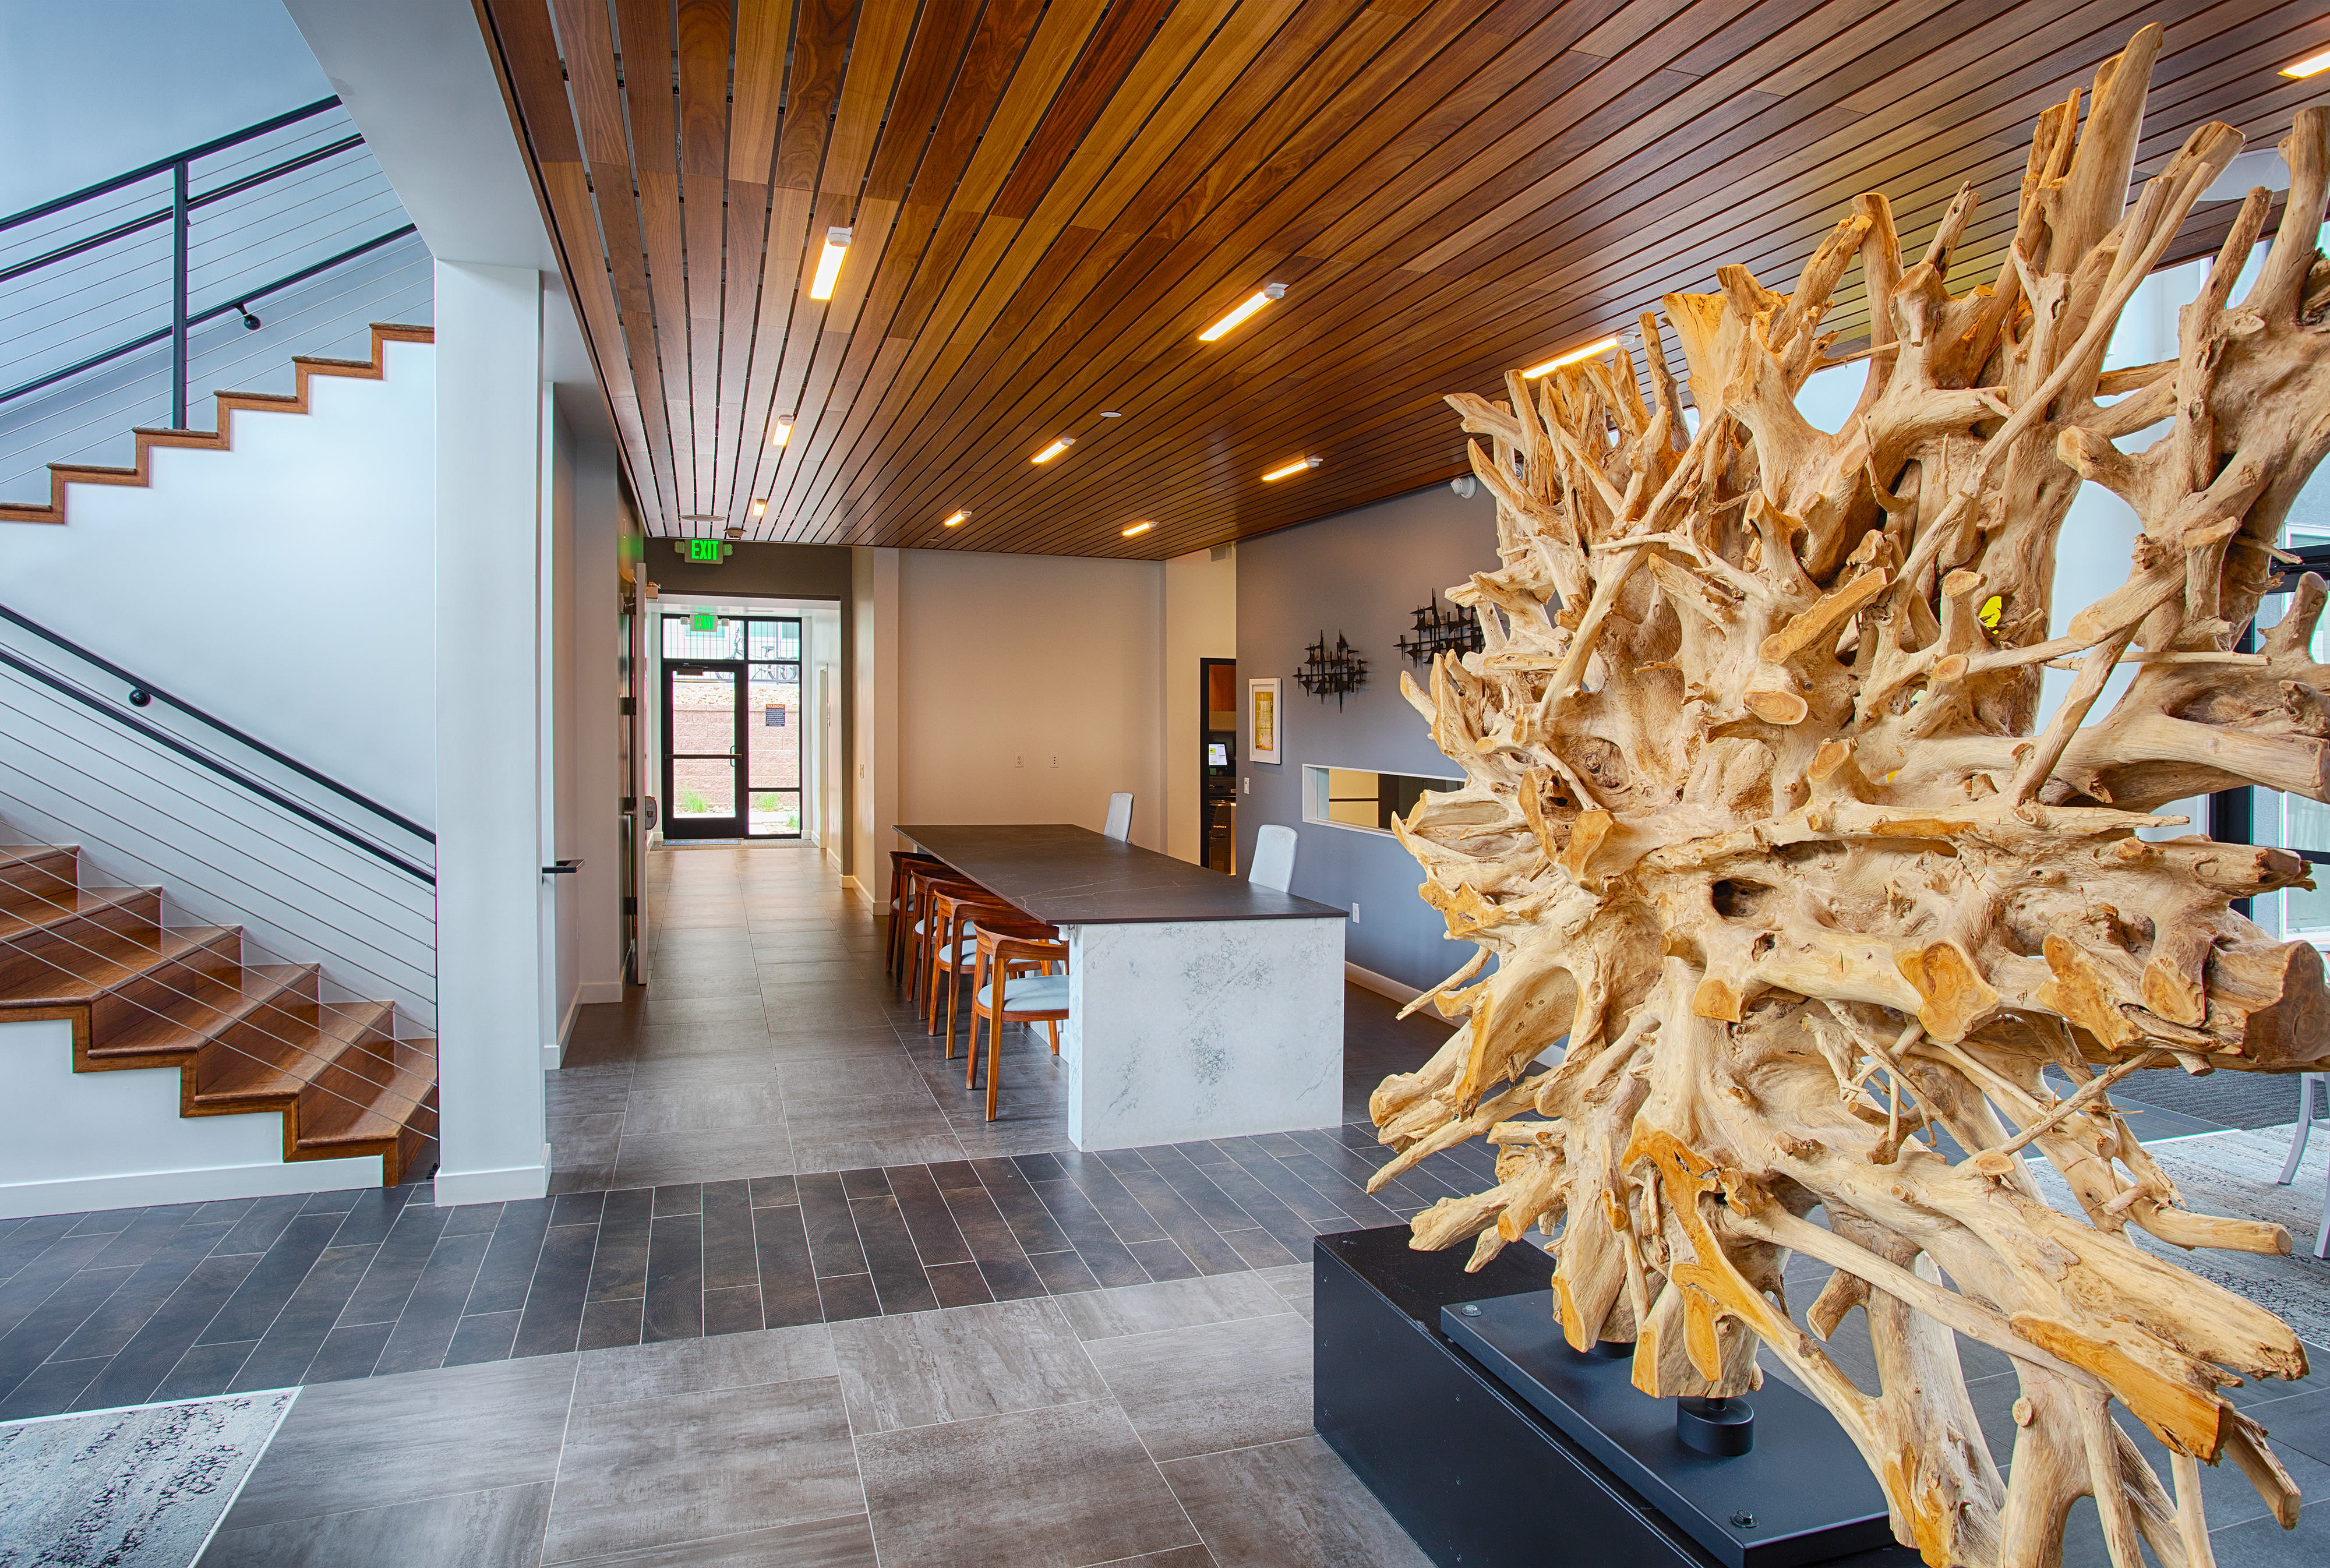 Sleek modern décor in the lobby at Elevate in Englewood, Colorado